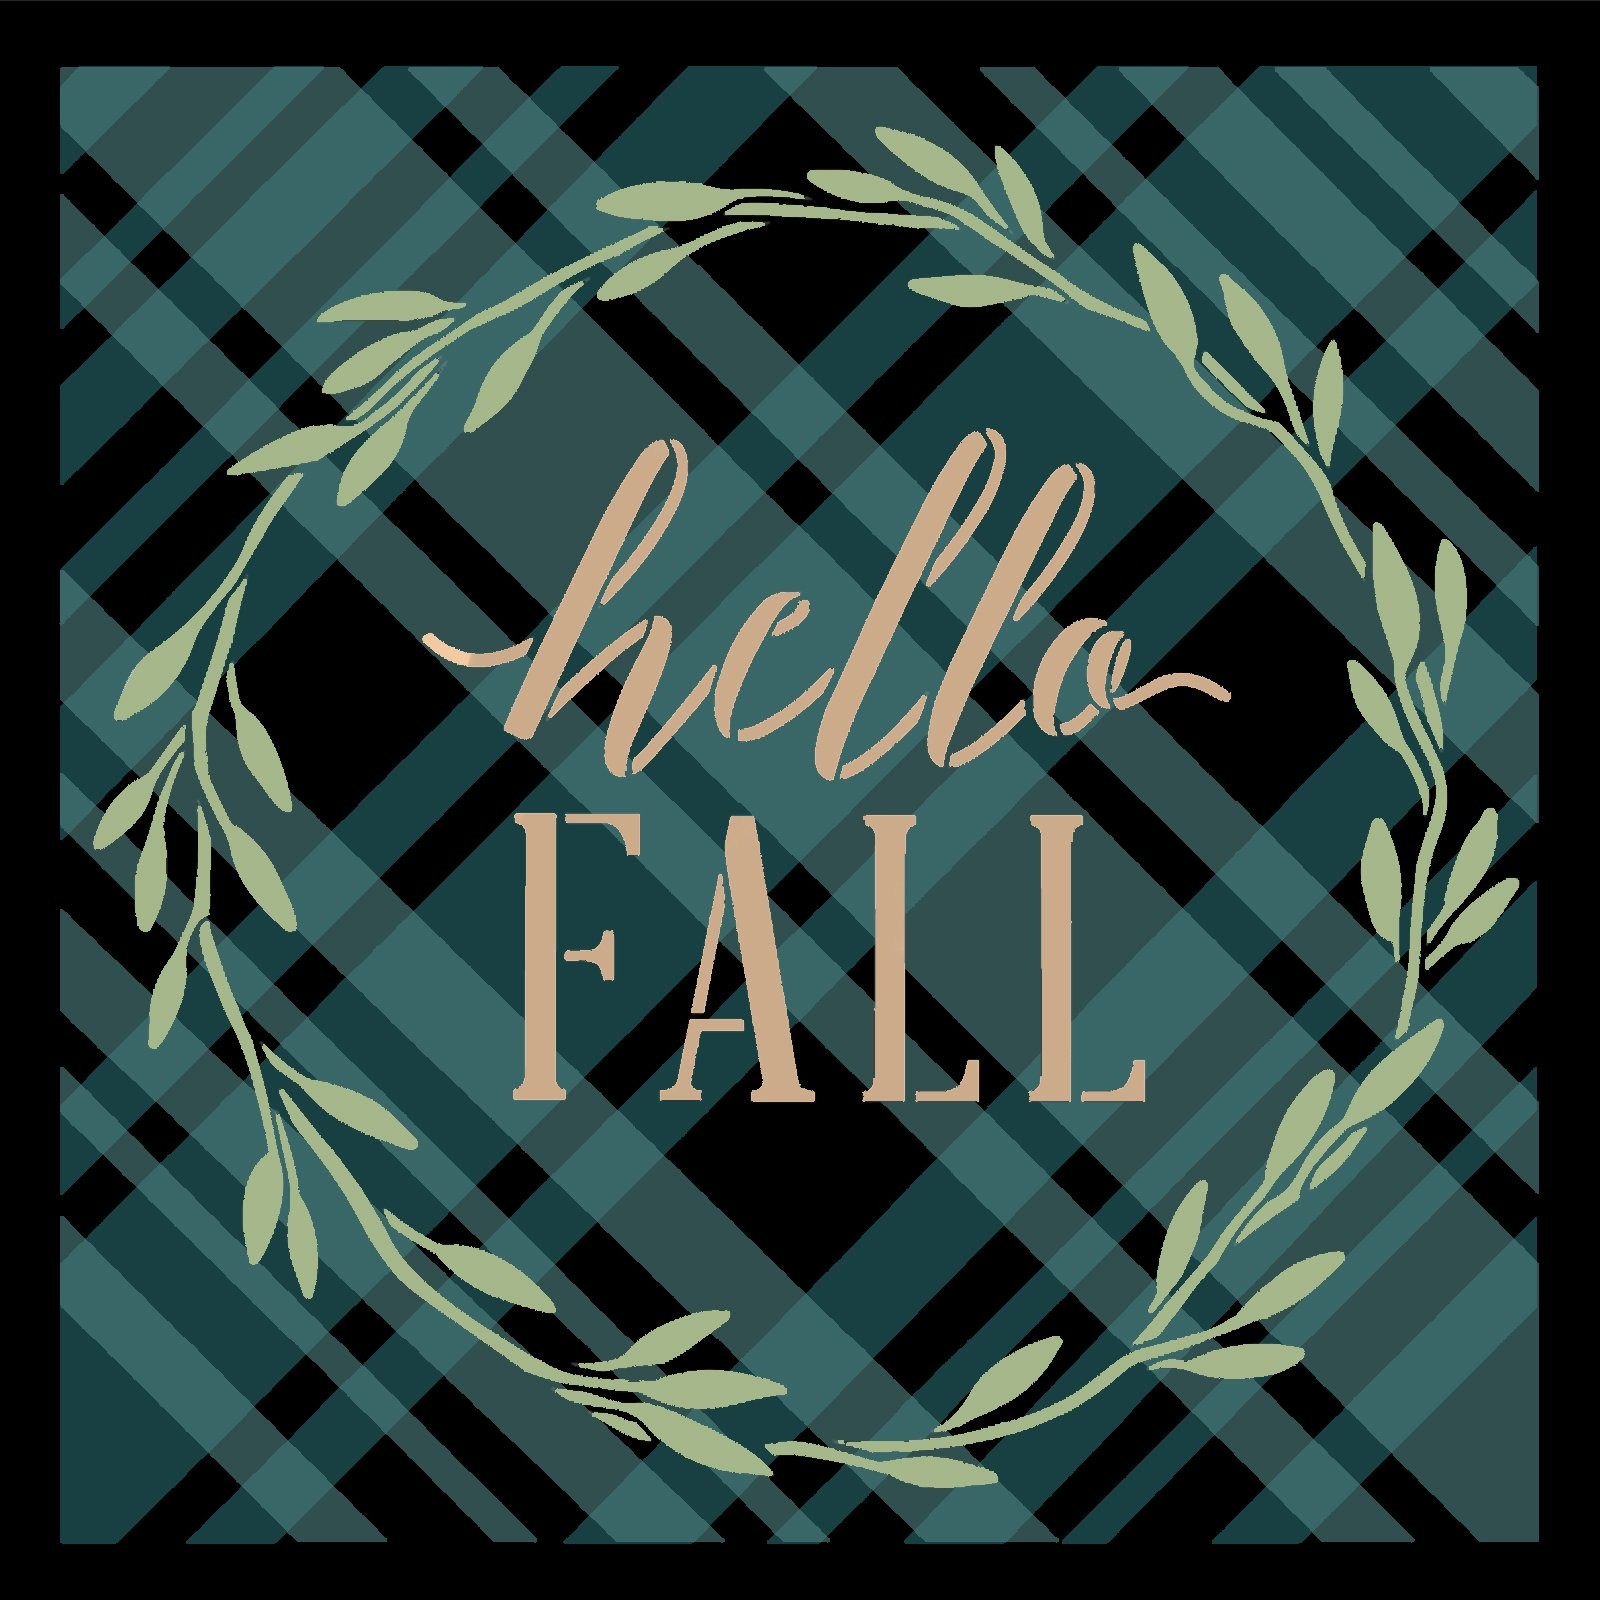 Fall Plaid Stencil by StudioR12 | Craft DIY Autumn Pattern Home Decor | Reusable Mylar Template | Paint Seasonal Wood Sign Background | Select Size